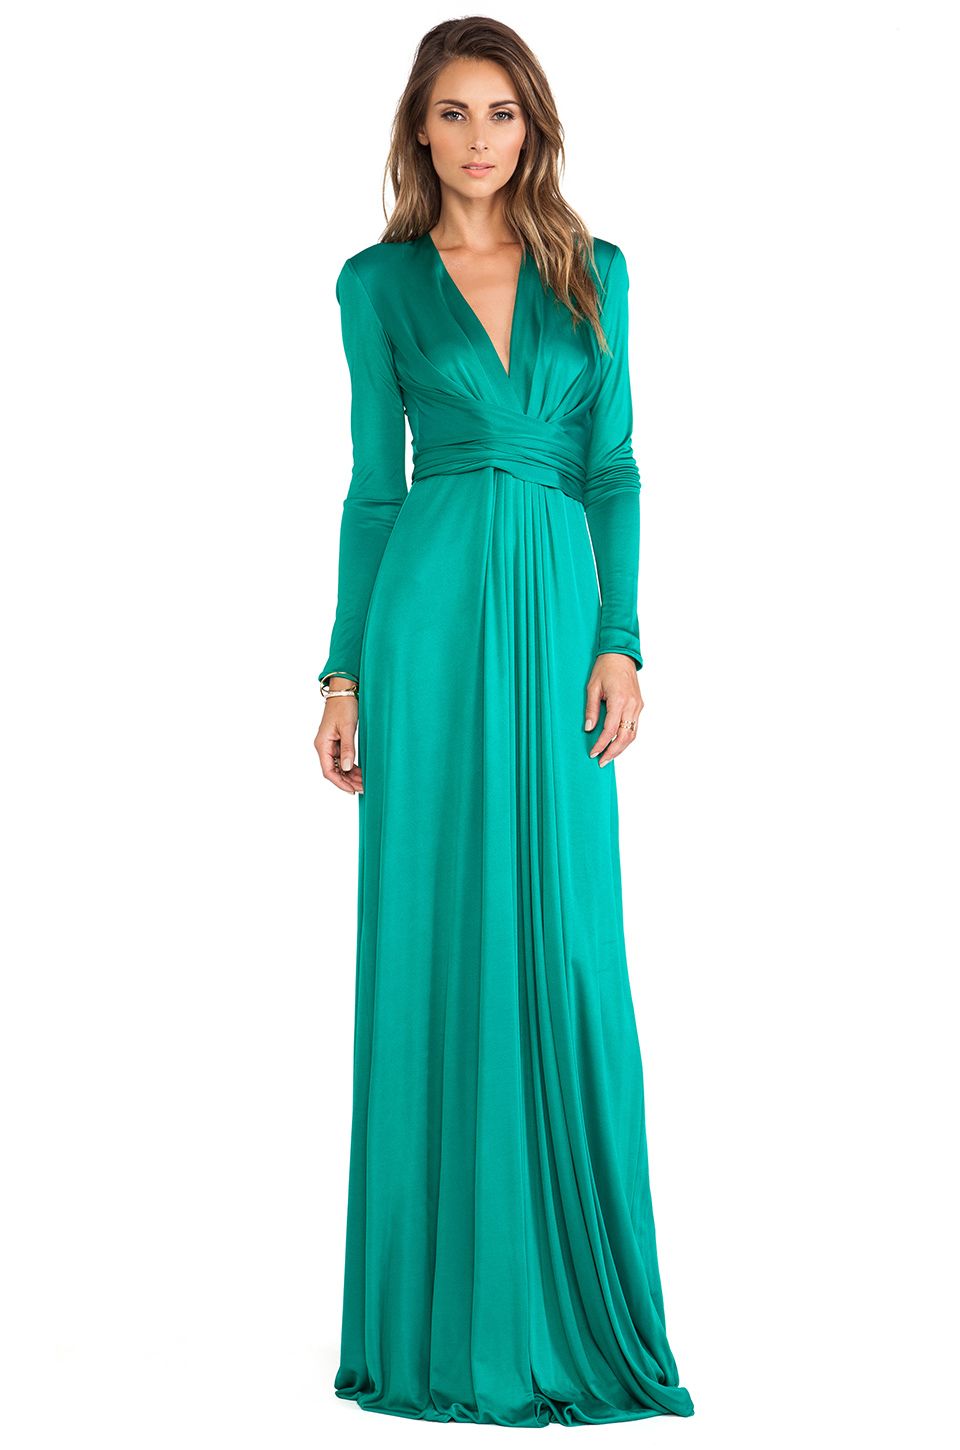 Maxi Dresses for Maximum Style. Maxi dresses are the perfect addition to any fall wardrobe. Wear the latest in women's maxi dresses to brighten the long autumn days and bring that stylish look to .